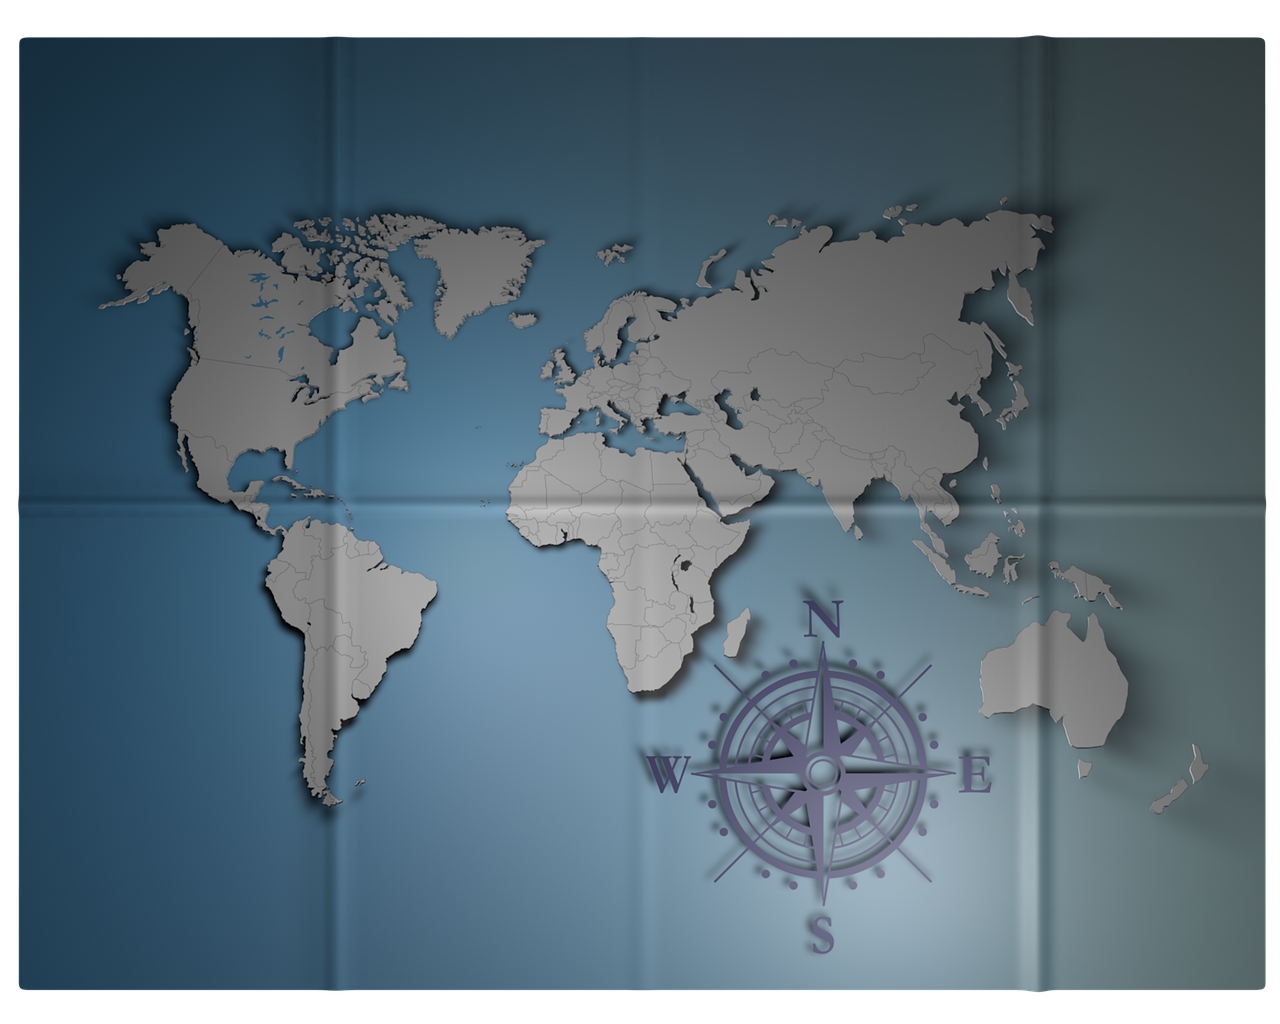 Map Bent World Map Of The World Blue Free Photo From Needpix Com